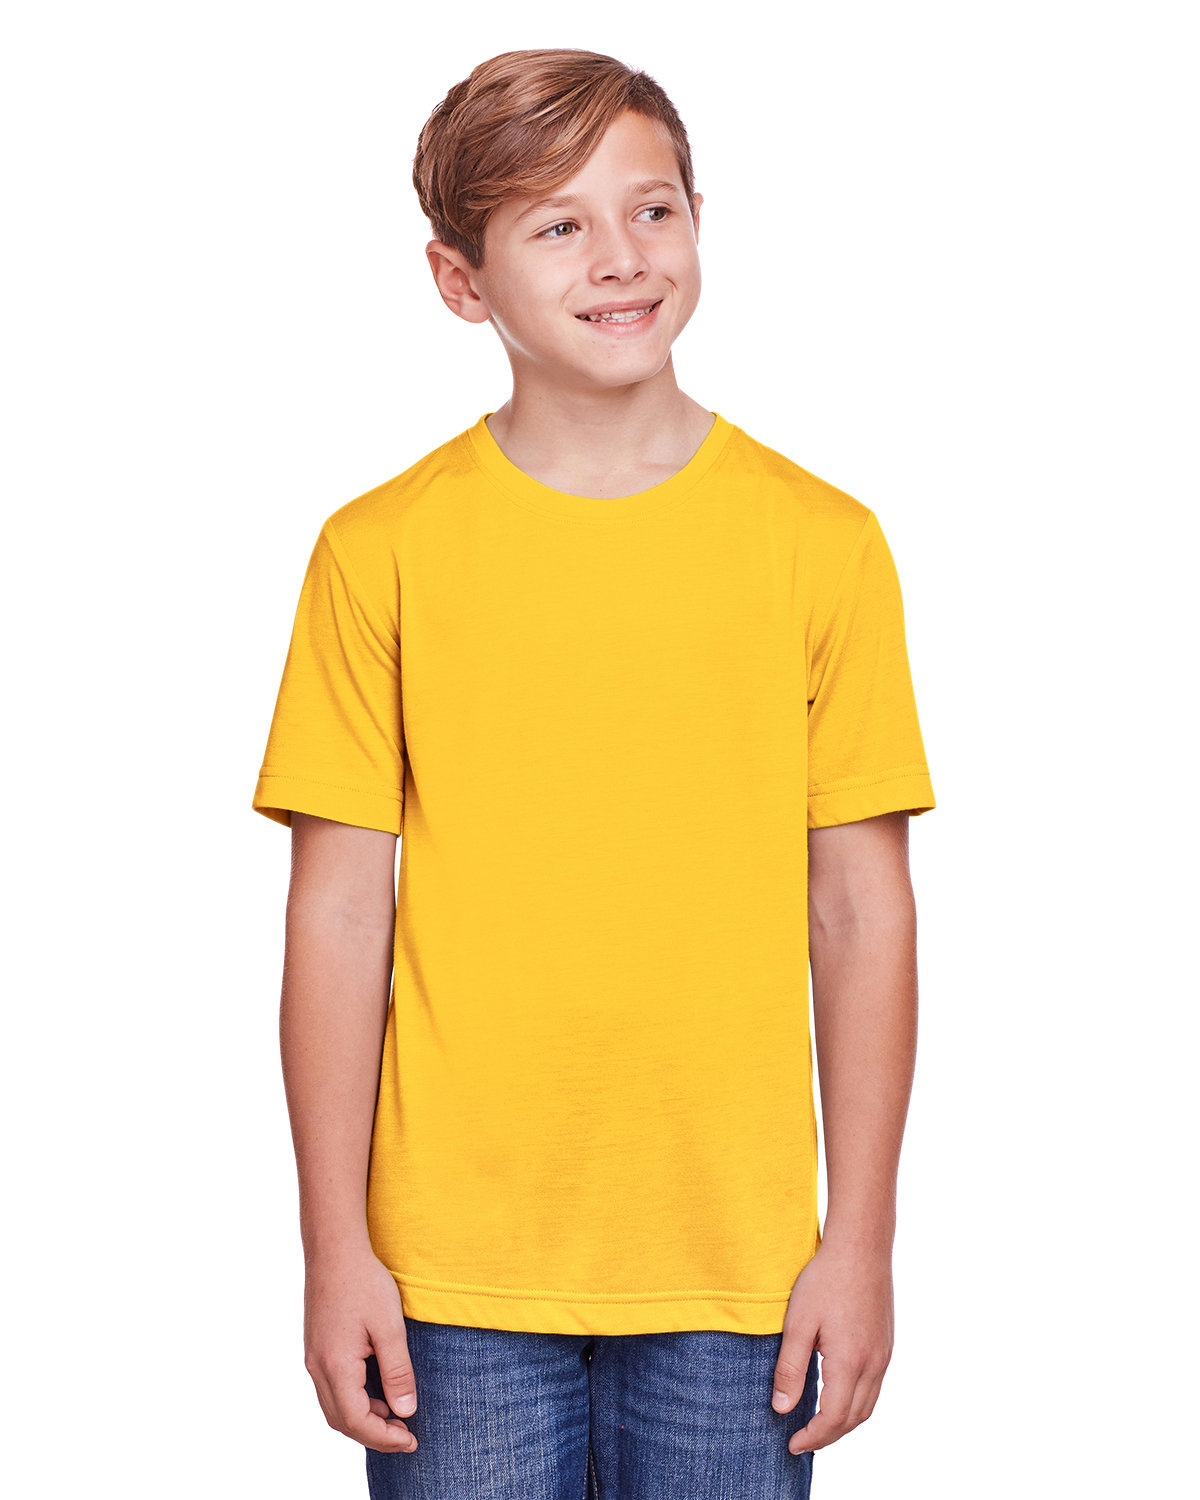 Core 365 Youth Fusion ChromaSoft Performance T-Shirt CAMPUS GOLD